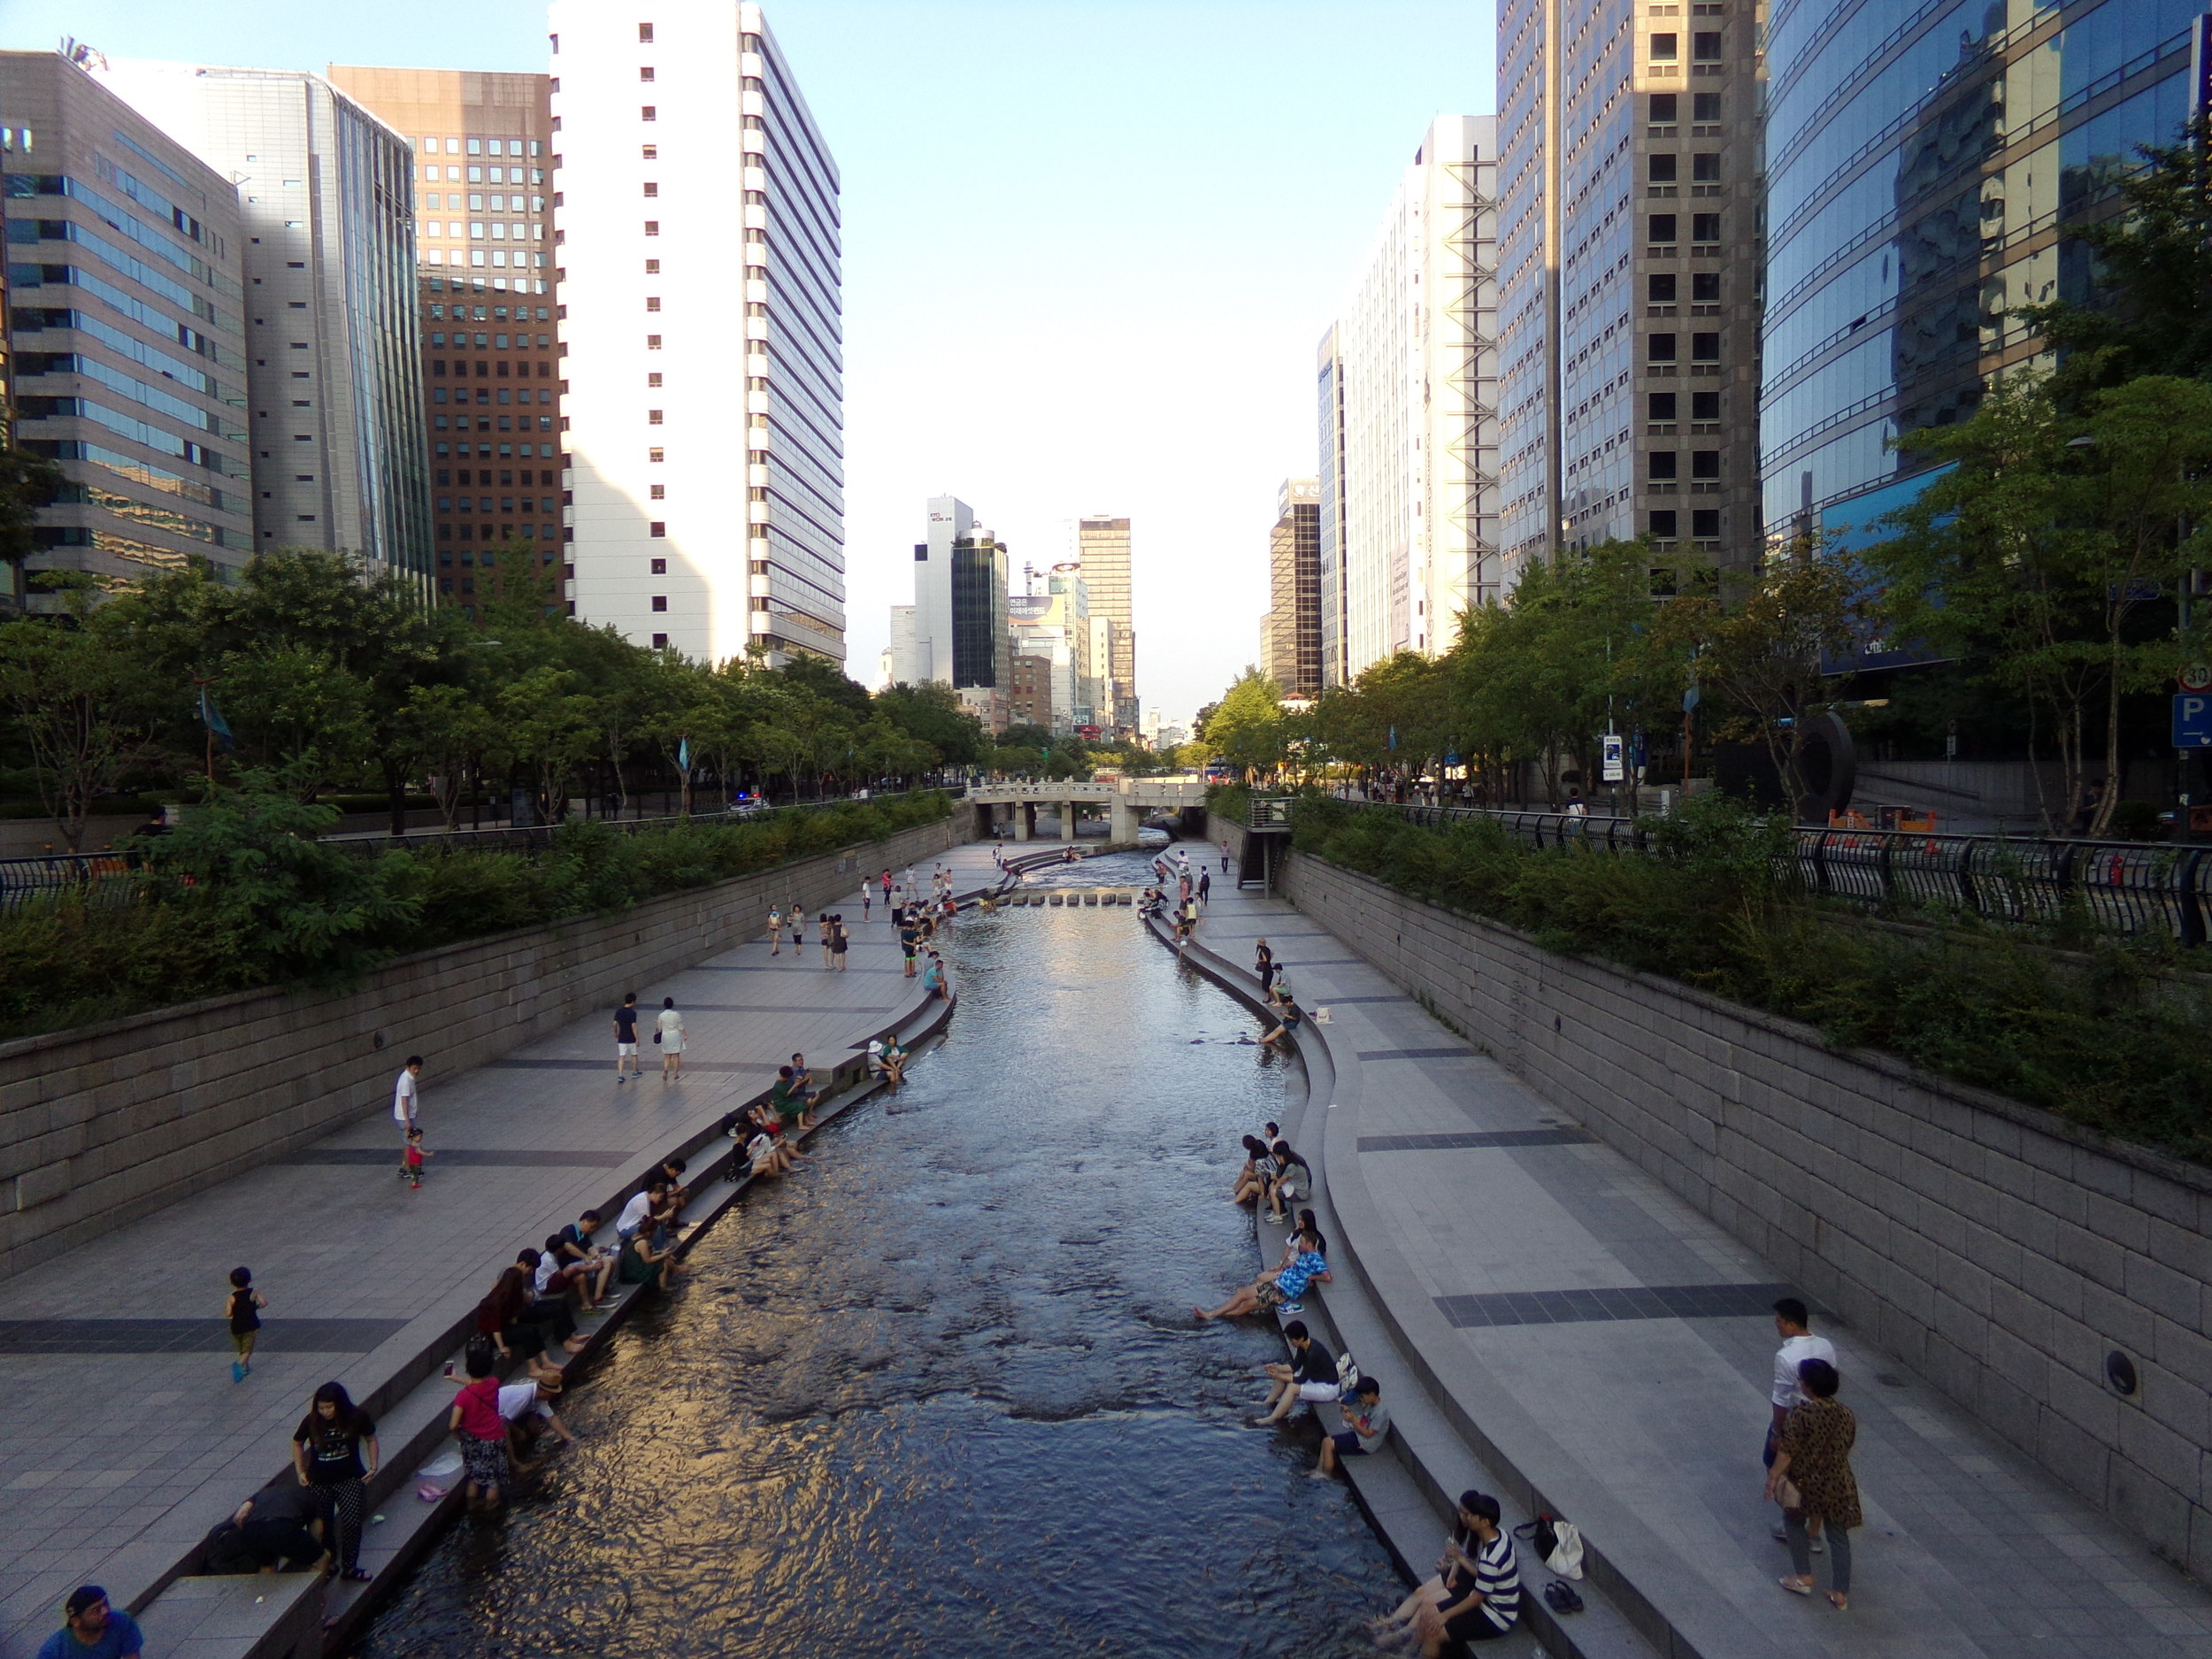 Cheonggye stream which runs through the main downtown area of Seoul. A narrow line of peace and nature in the center of the city's concrete jungle.